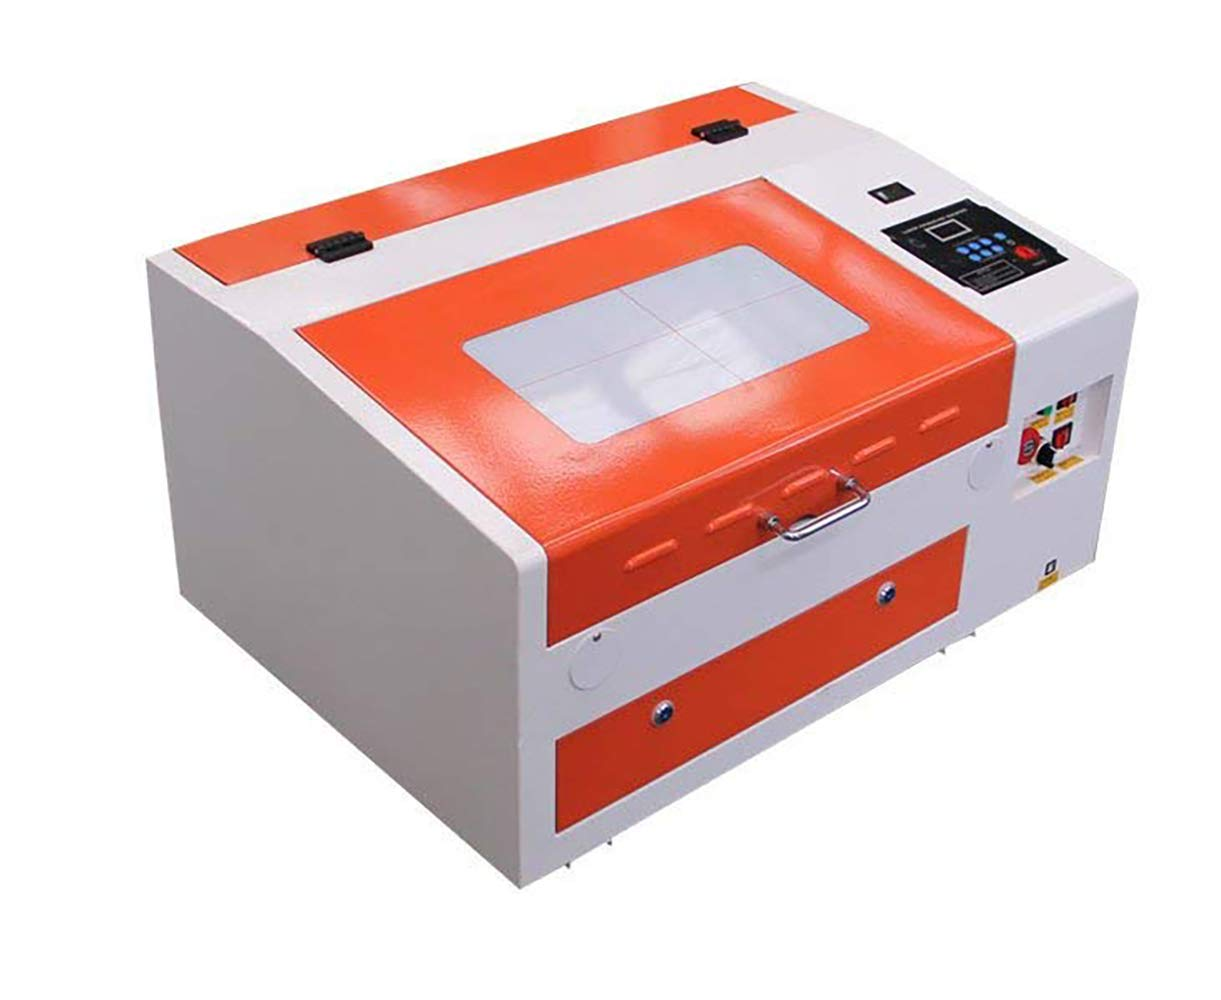 Best Laser Engravers And Cutters - Choose One! - Builders Counsel